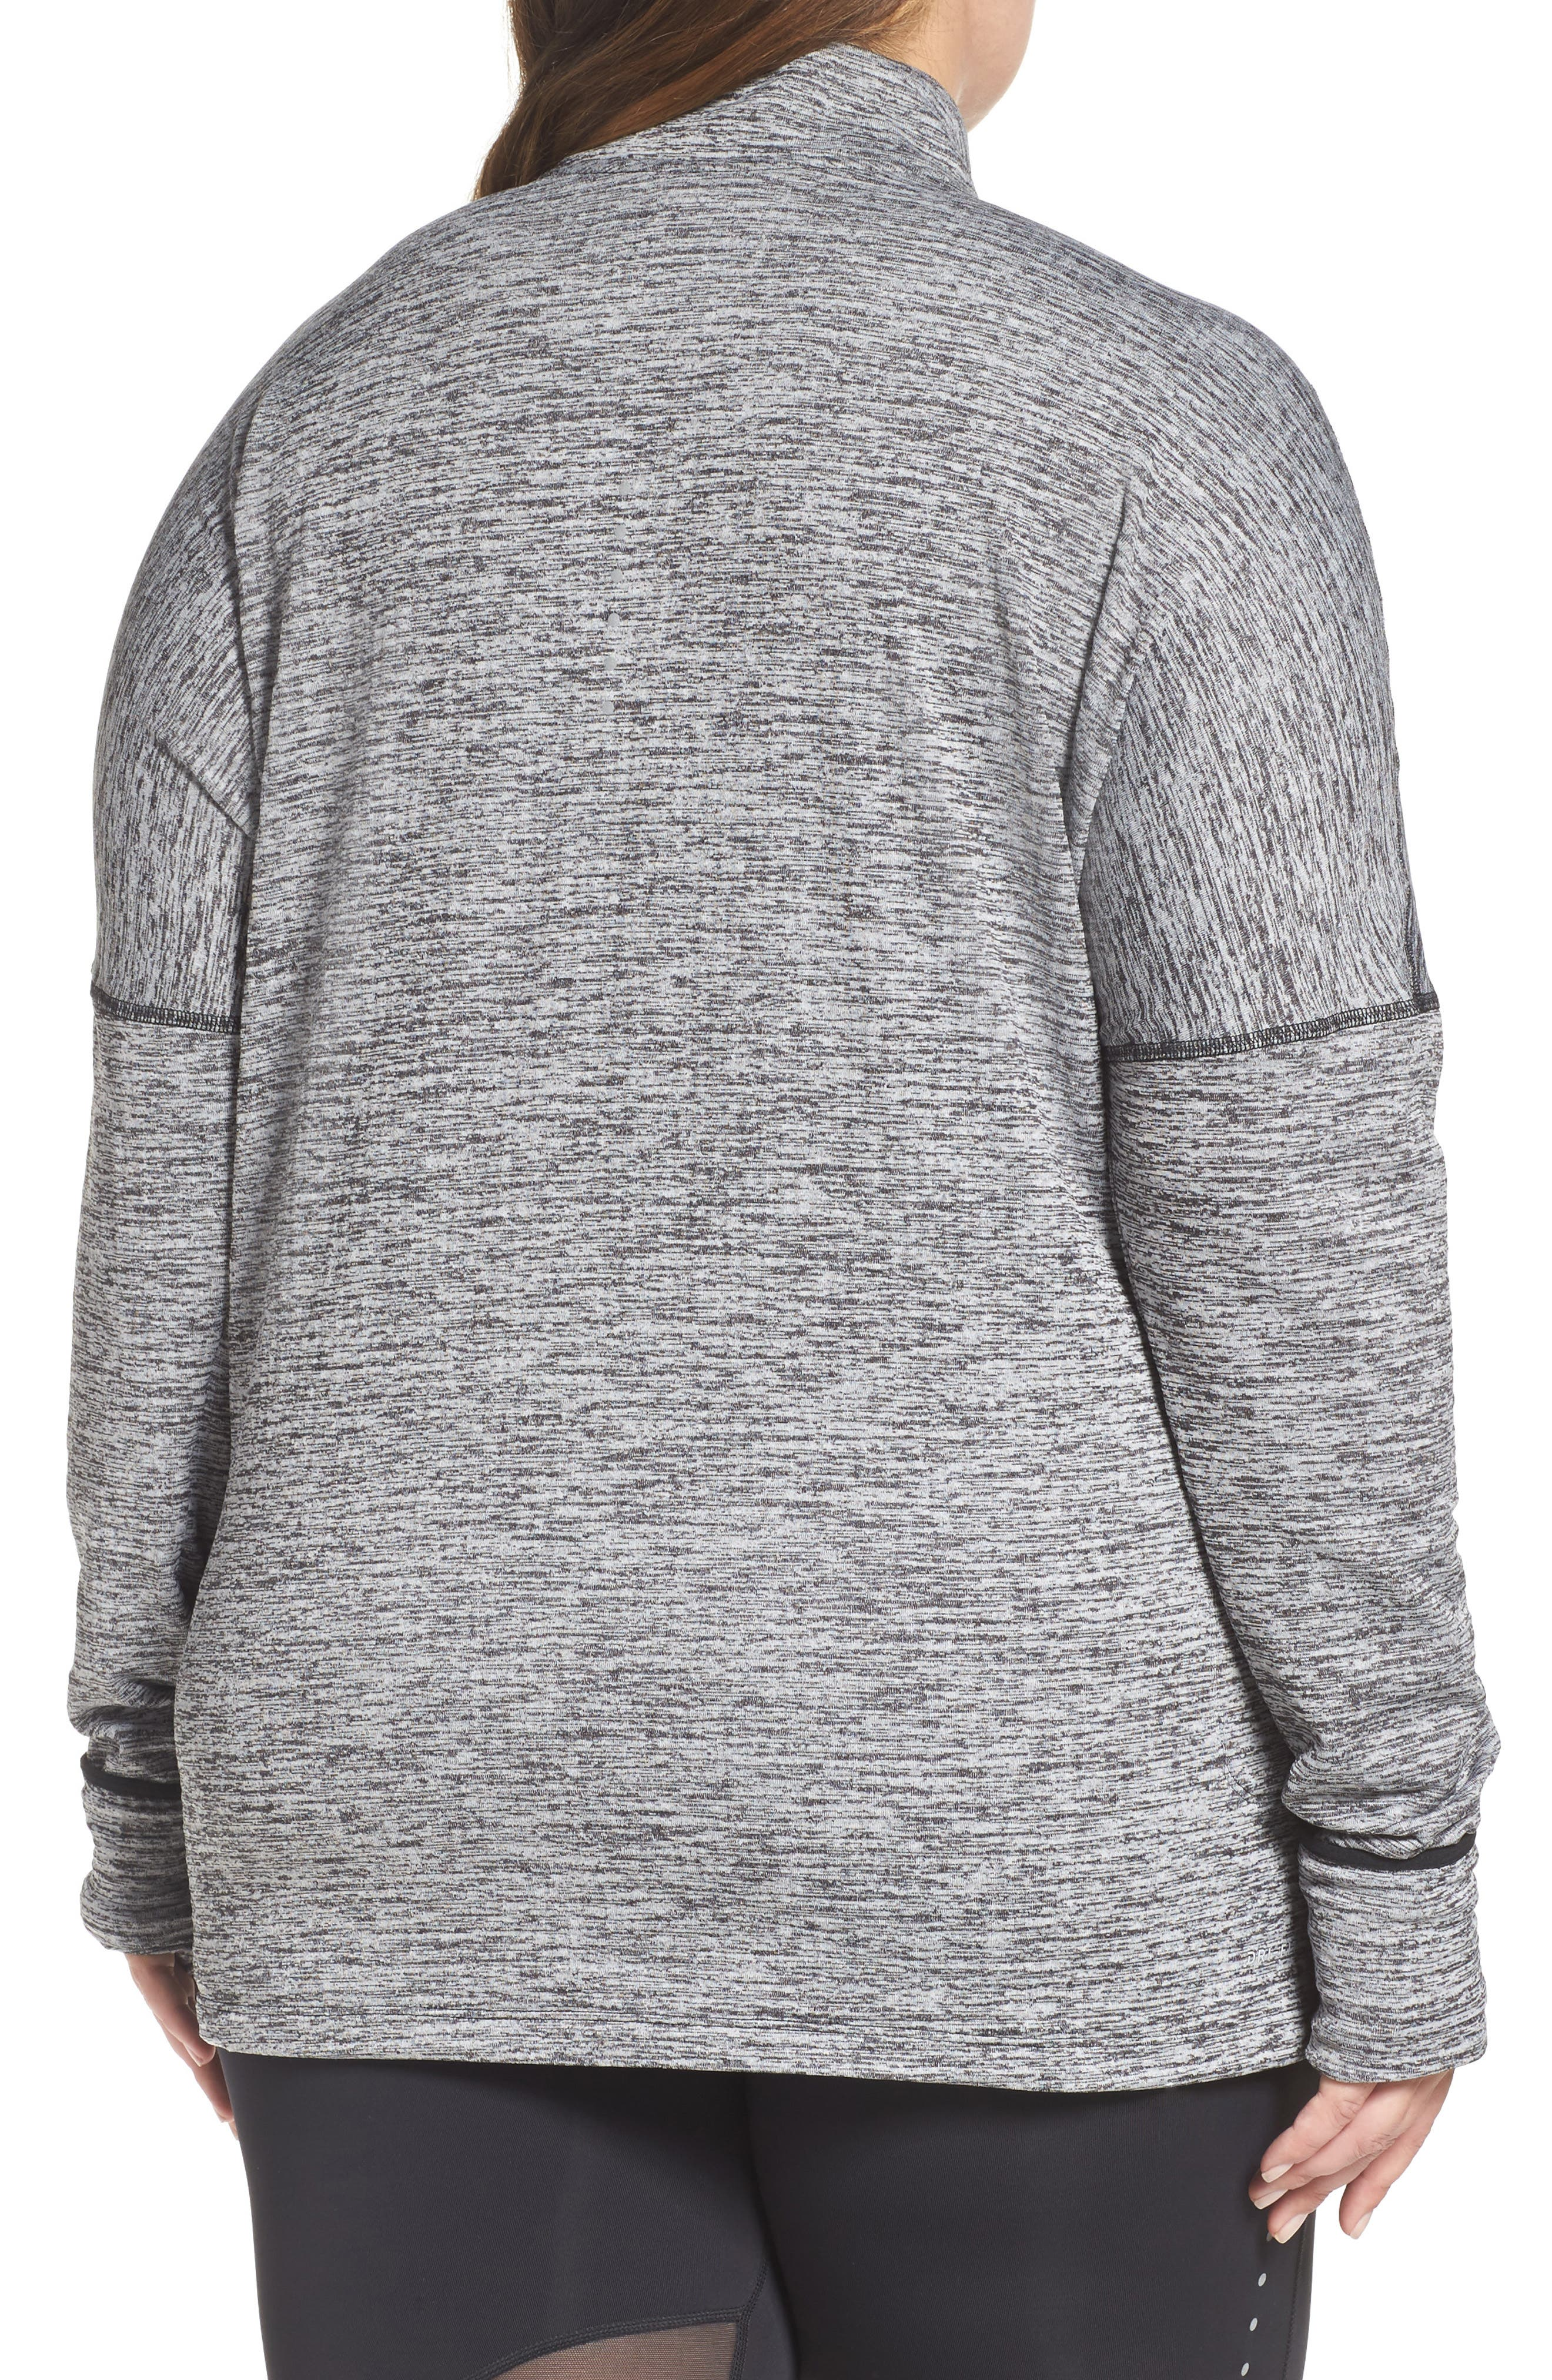 Sphere Element Long Sleeve Running Top,                             Alternate thumbnail 5, color,